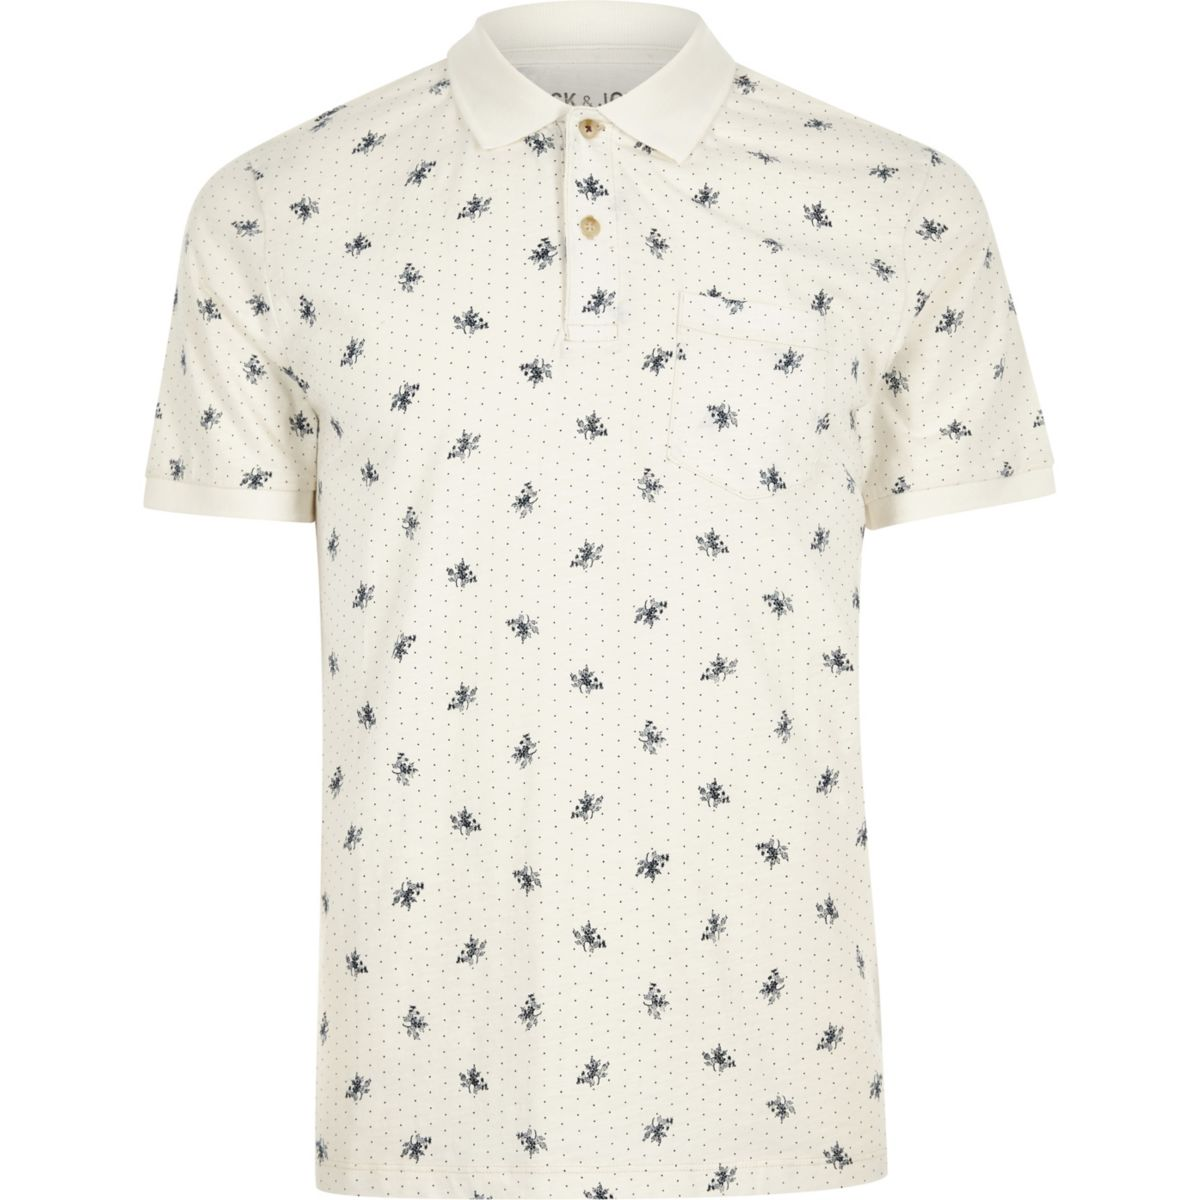 amp; shirt white print polo Jones Jack floral PR7qwTddY